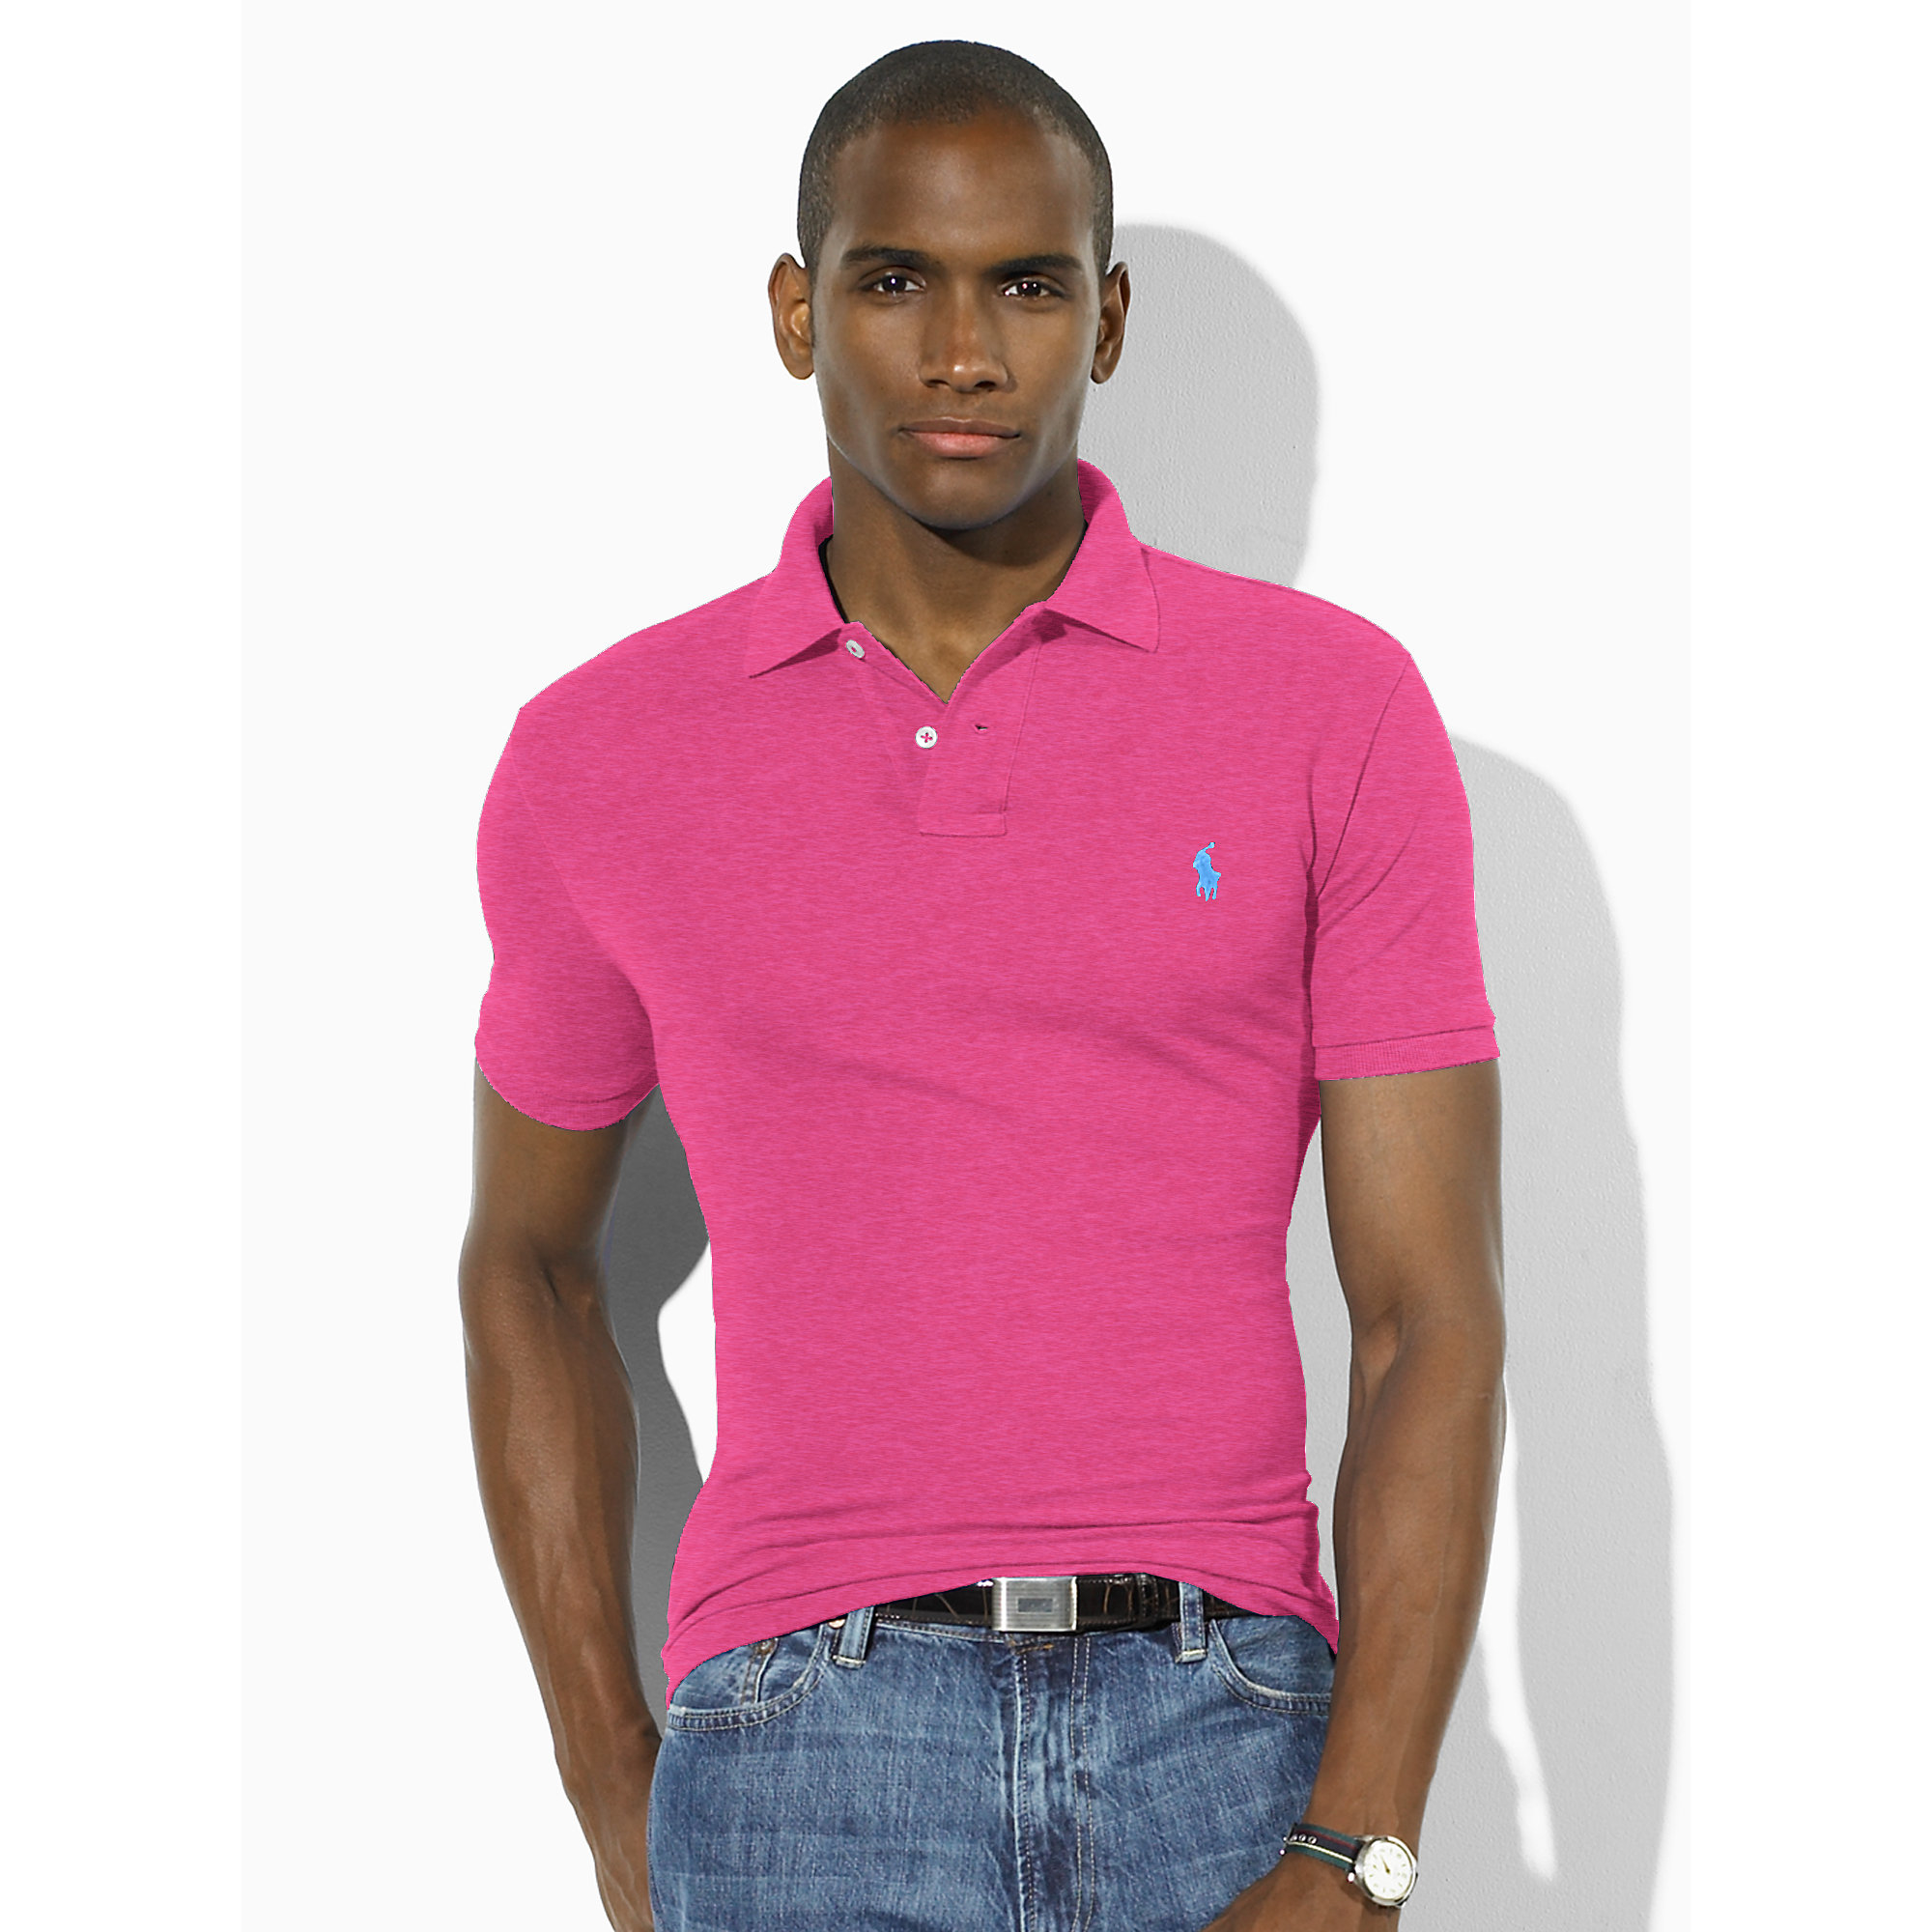 Polo ralph lauren slim fit mesh polo shirt in pink for men for Mens slim polo shirts